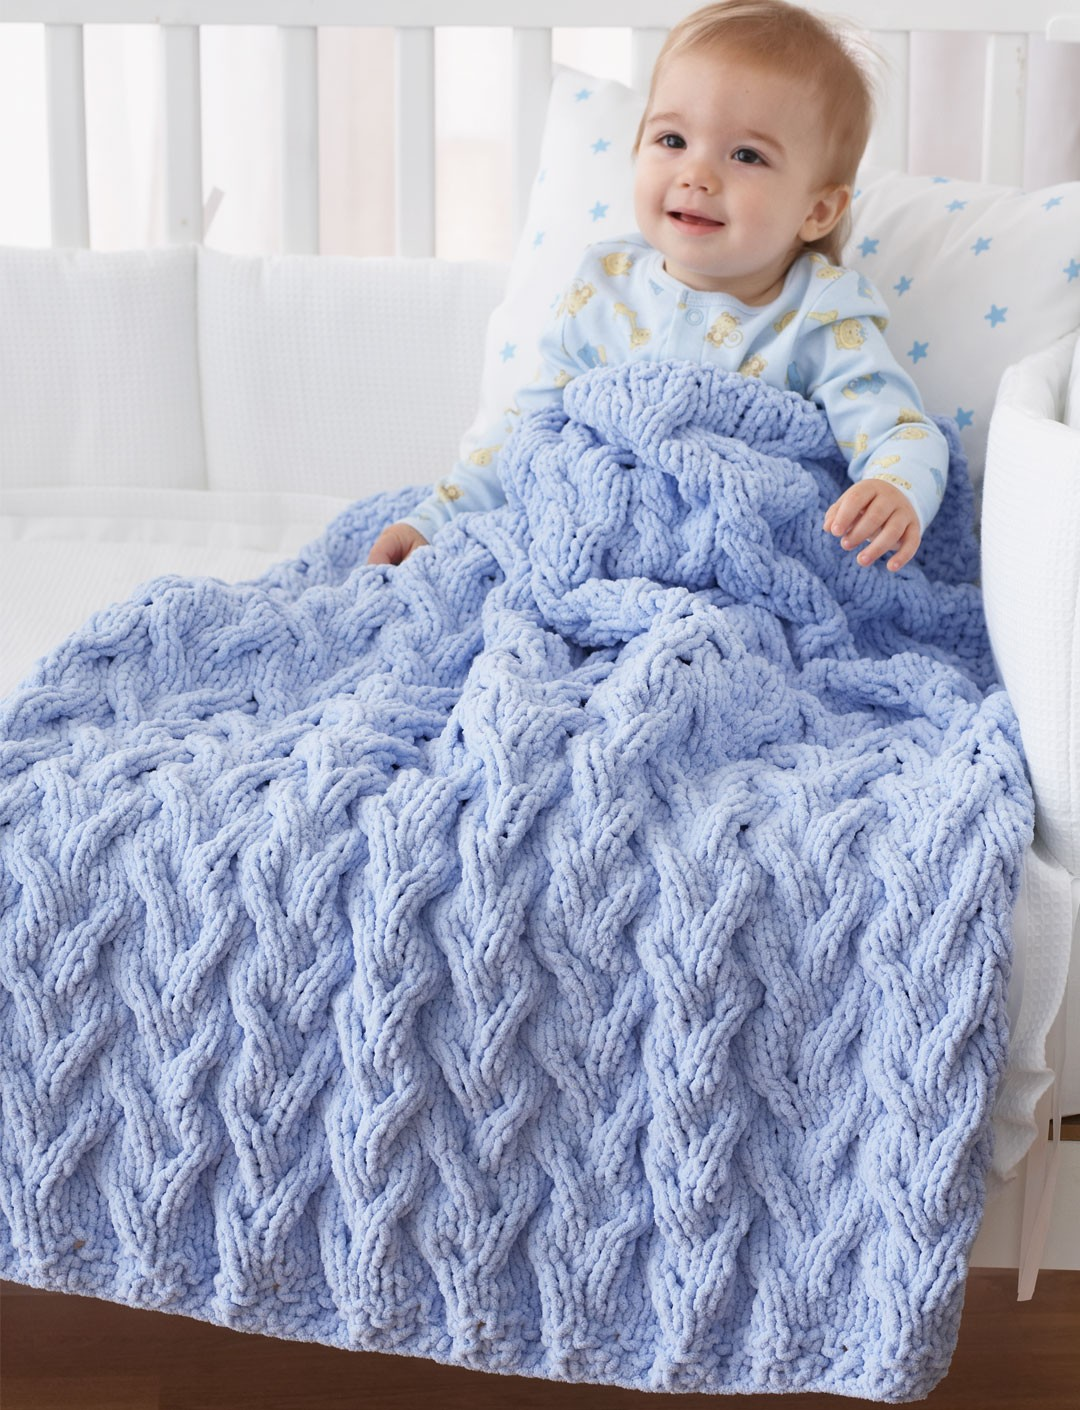 Bernat Shadow Cable Baby Blanket, Knit Pattern Yarnspirations